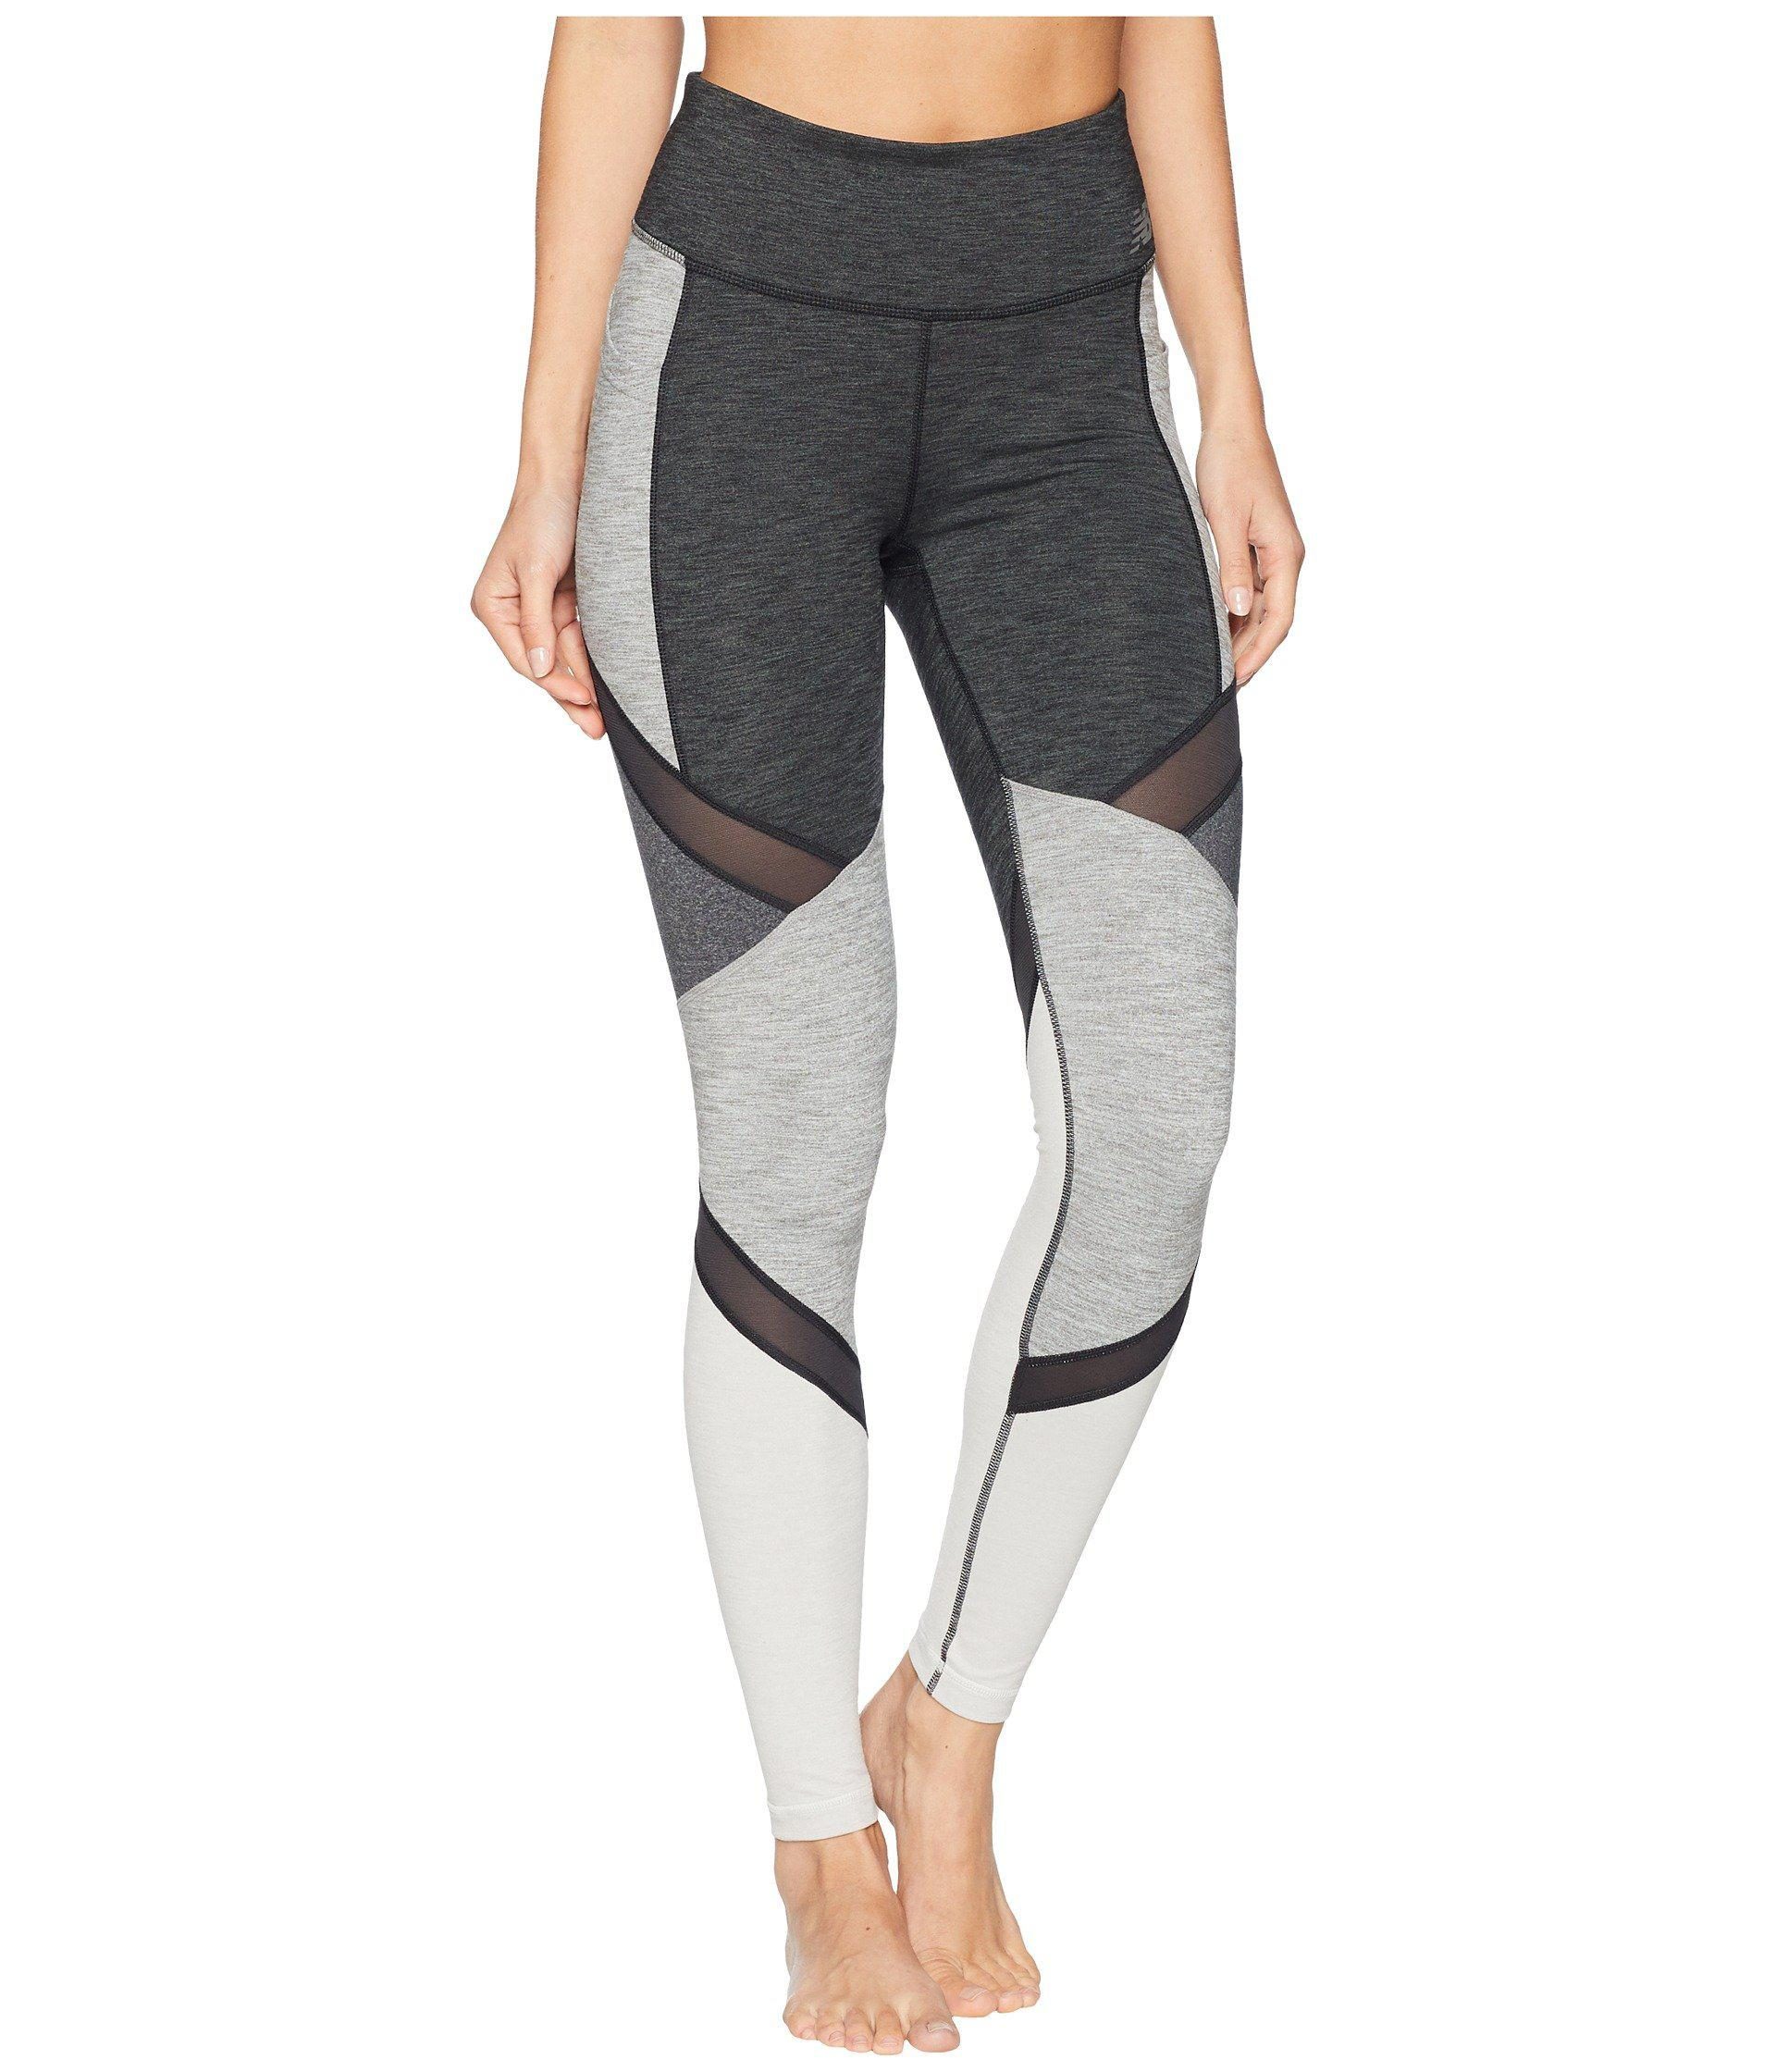 537f778c82869 New Balance High-rise Transform Pocket Tights (heather Charcoal/sea ...